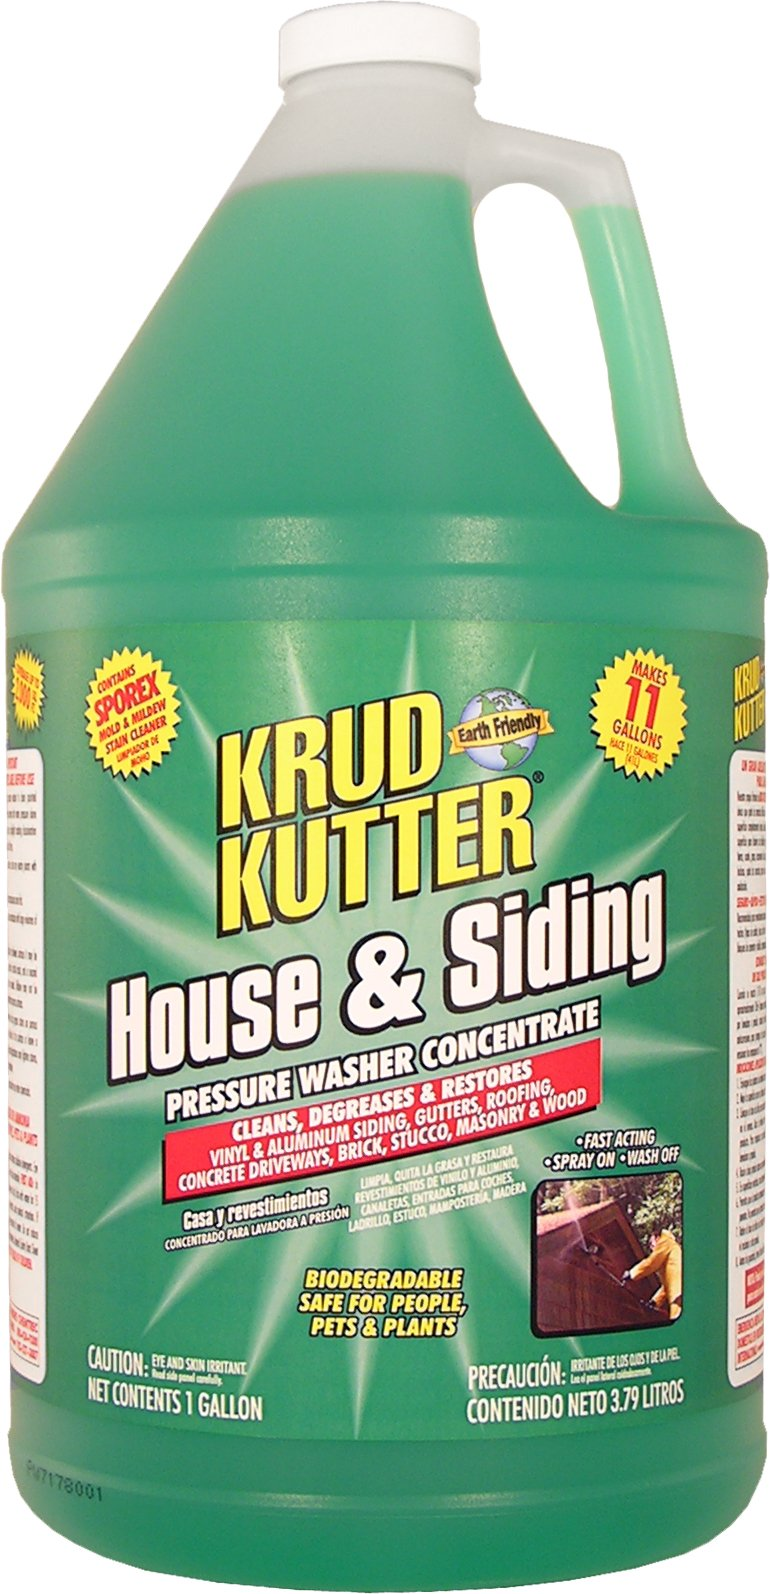 krud-kutter-hs01-green-concentrate-house-and-siding-cleaner-with-mild-odor